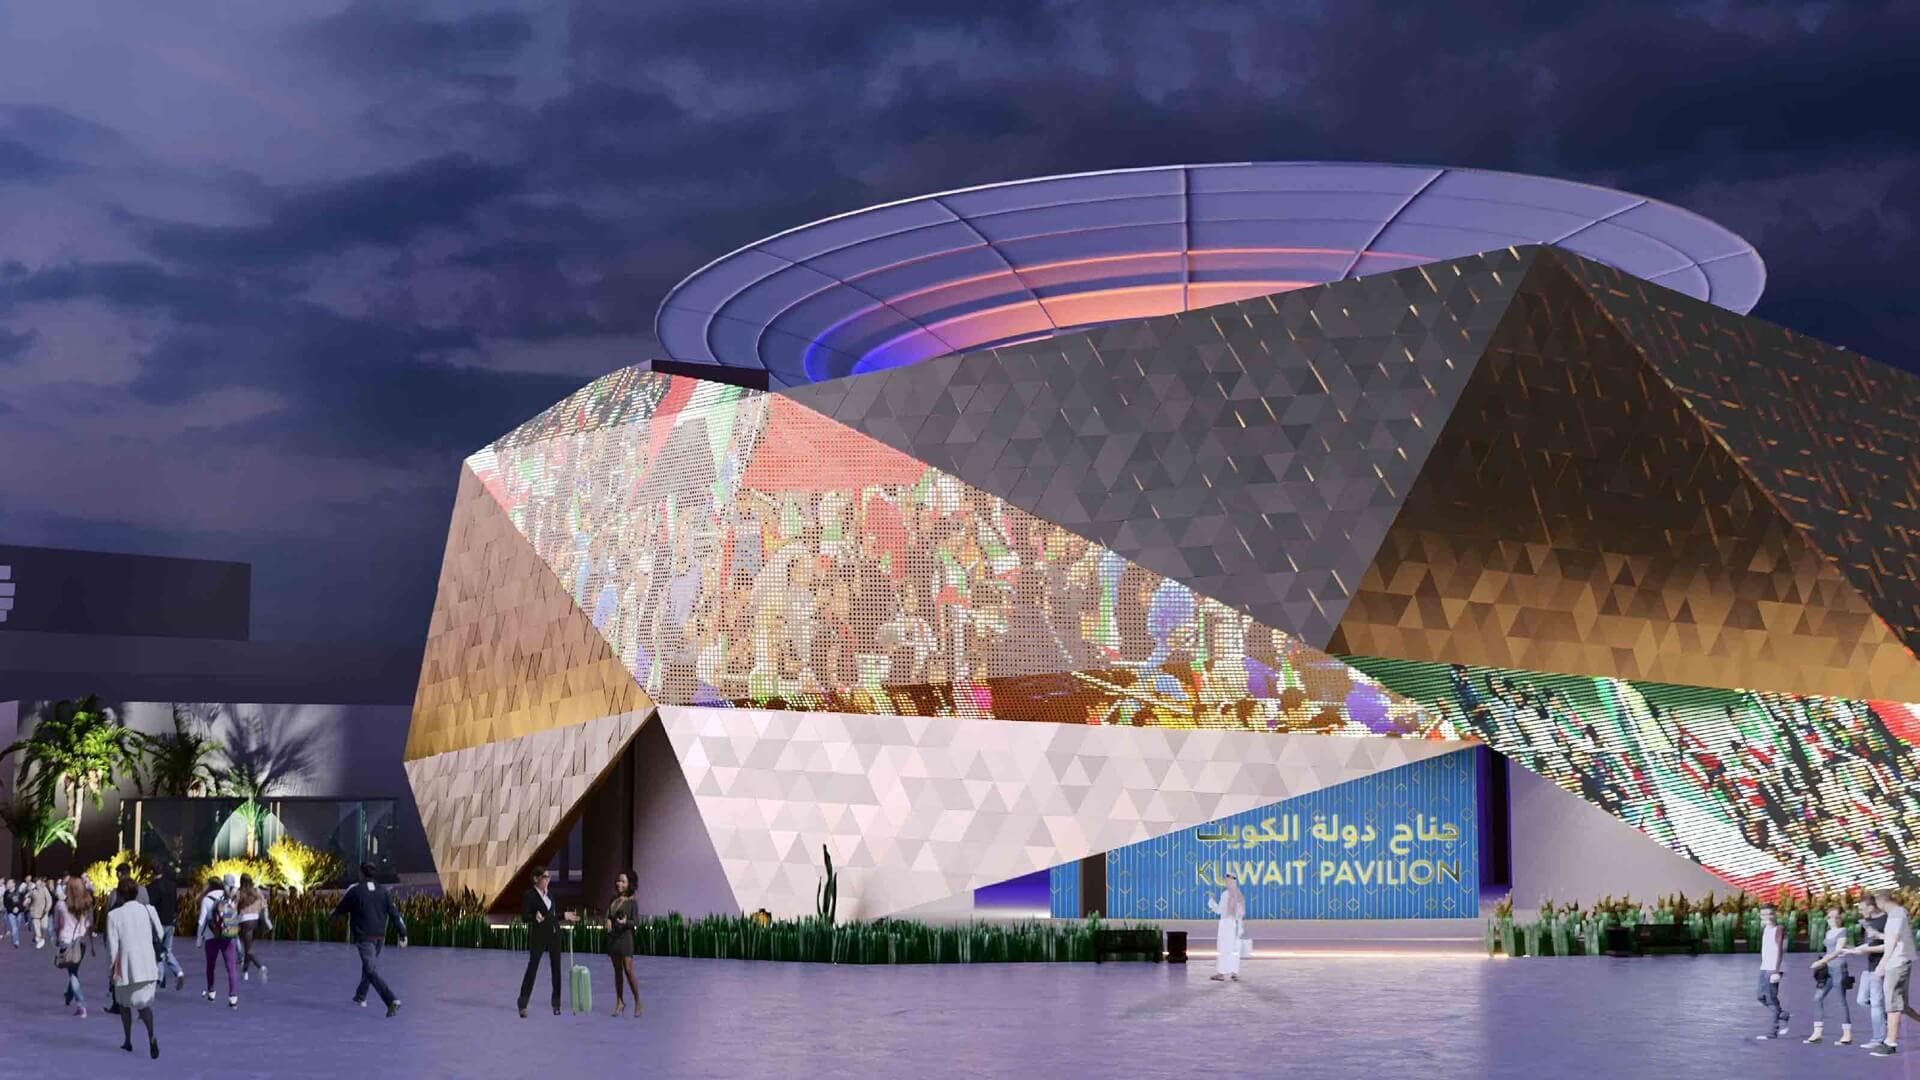 At the Kuwait pavilion, the past meets present to shape a far-reaching vision for the country's future. (Supplied: Expo 2020)